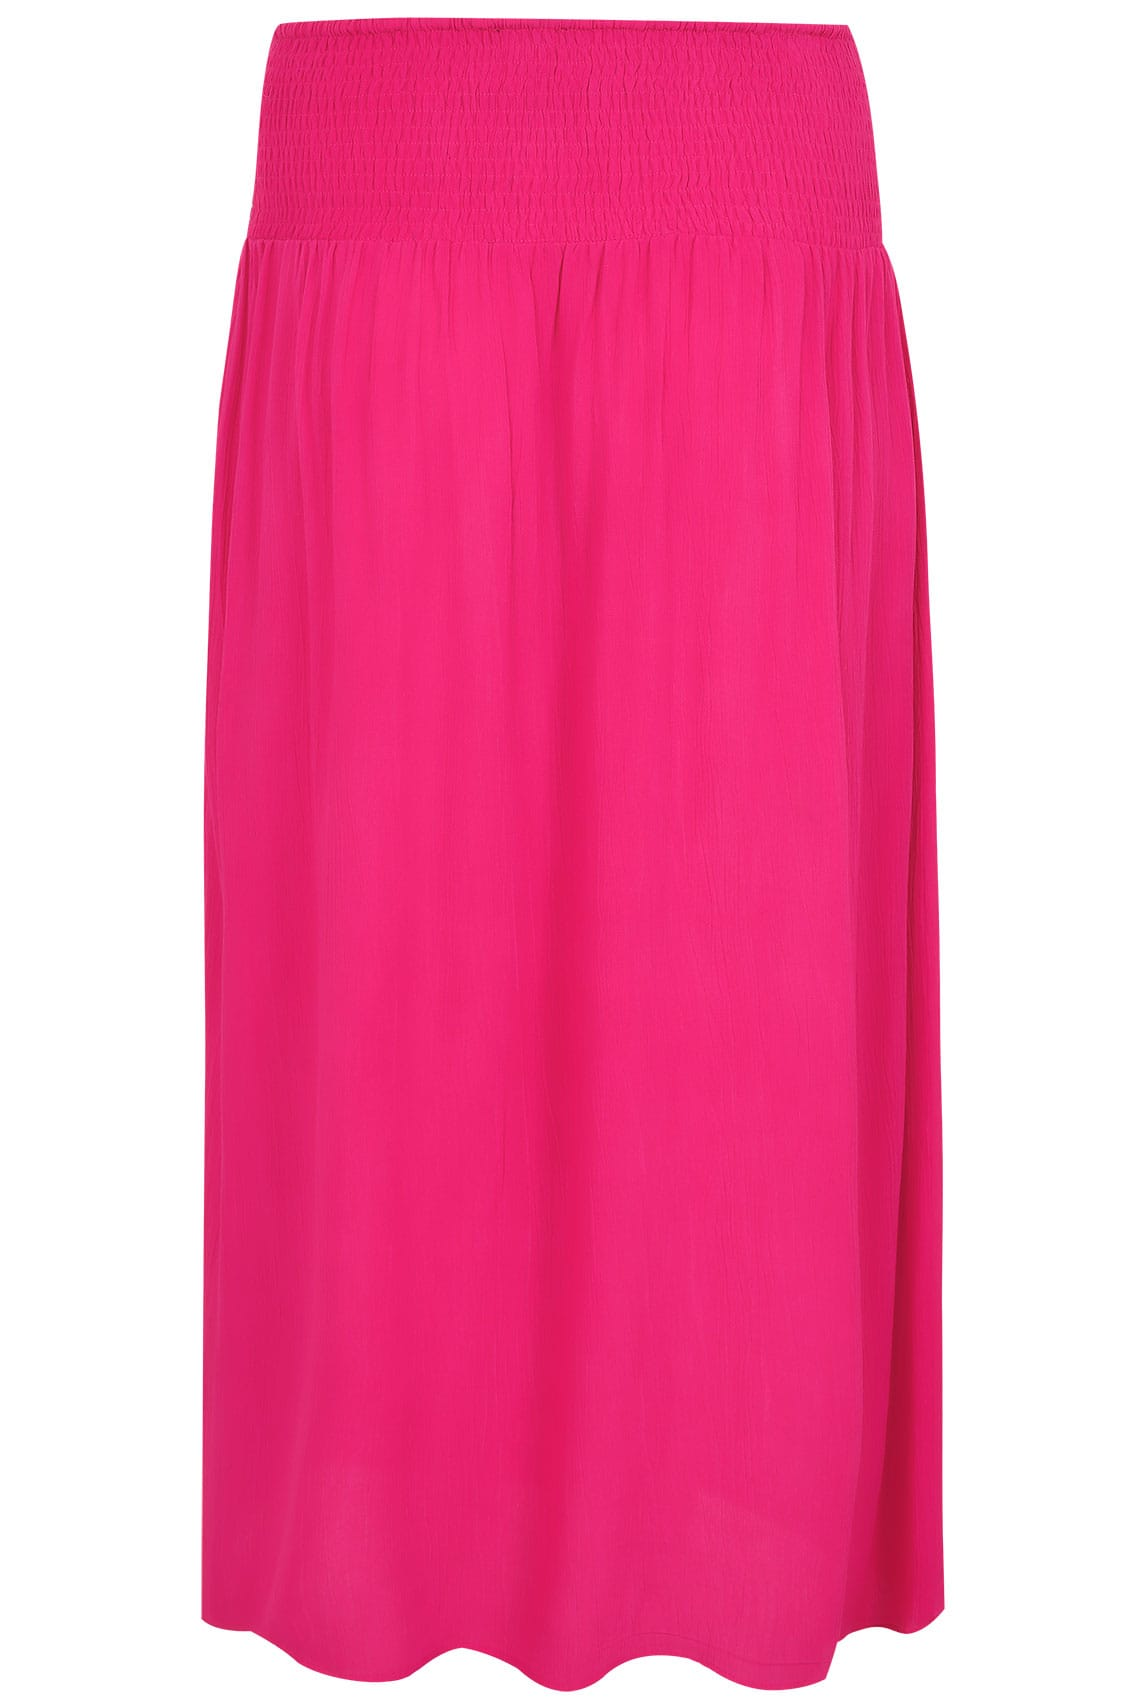 pink maxi skirt with ruched waistline plus size 16 to 36